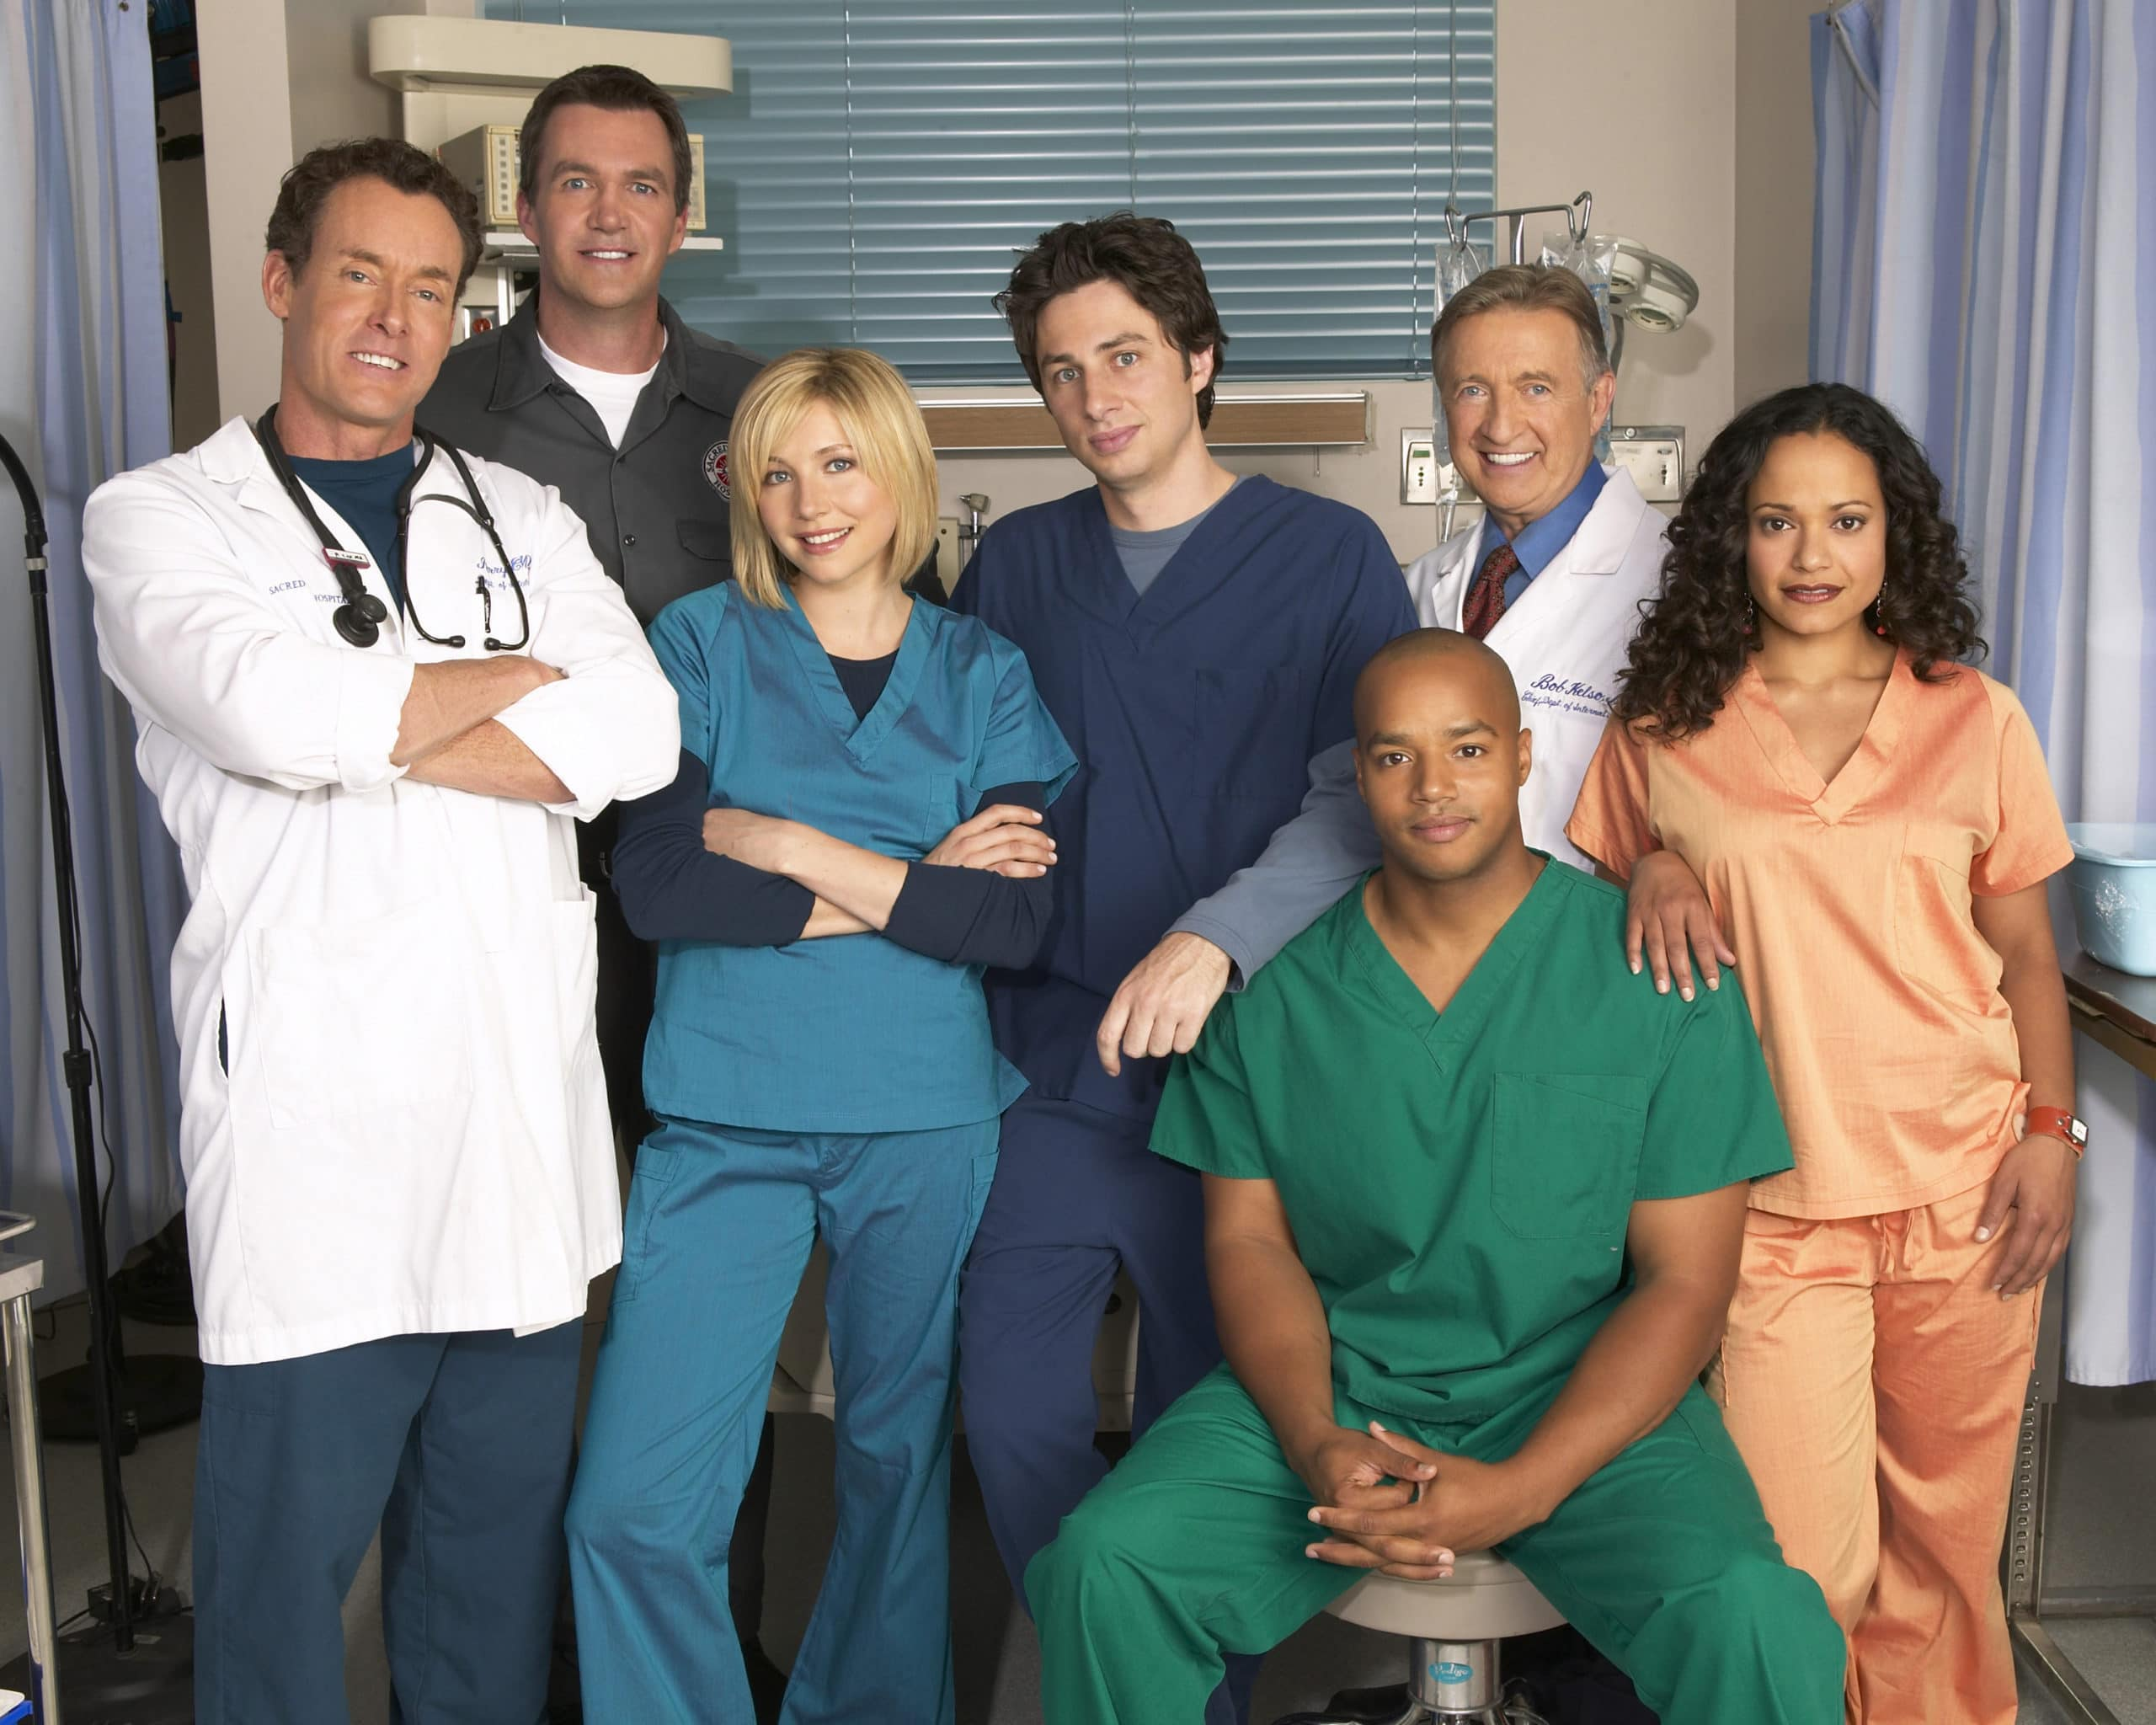 Scrubs die 5. Staffel ©Touchstone Television. All Rights Reserved